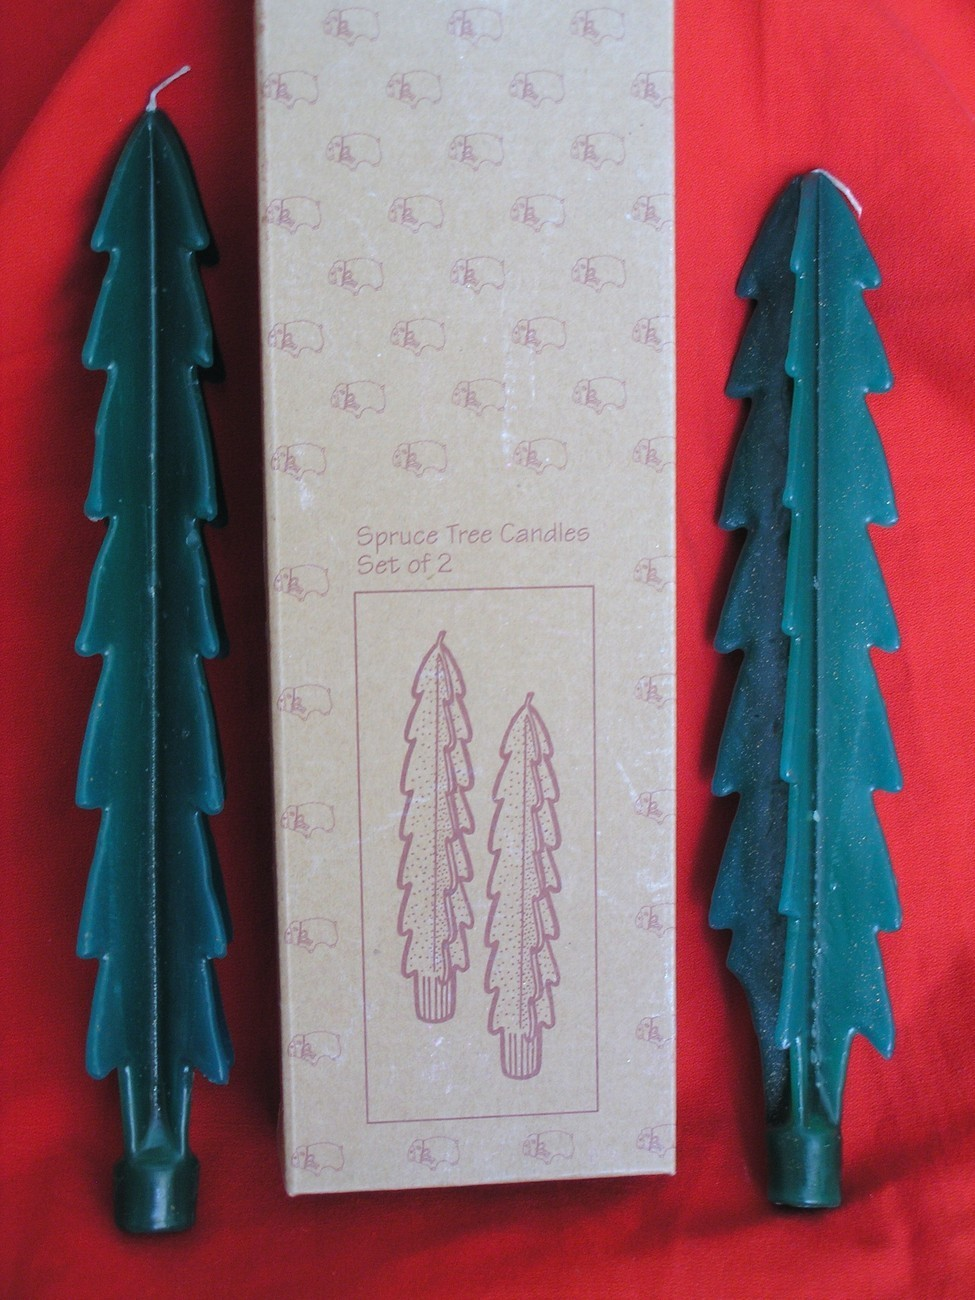 Christmas Spruce Tree Shaped Taper Candles -Set of 2